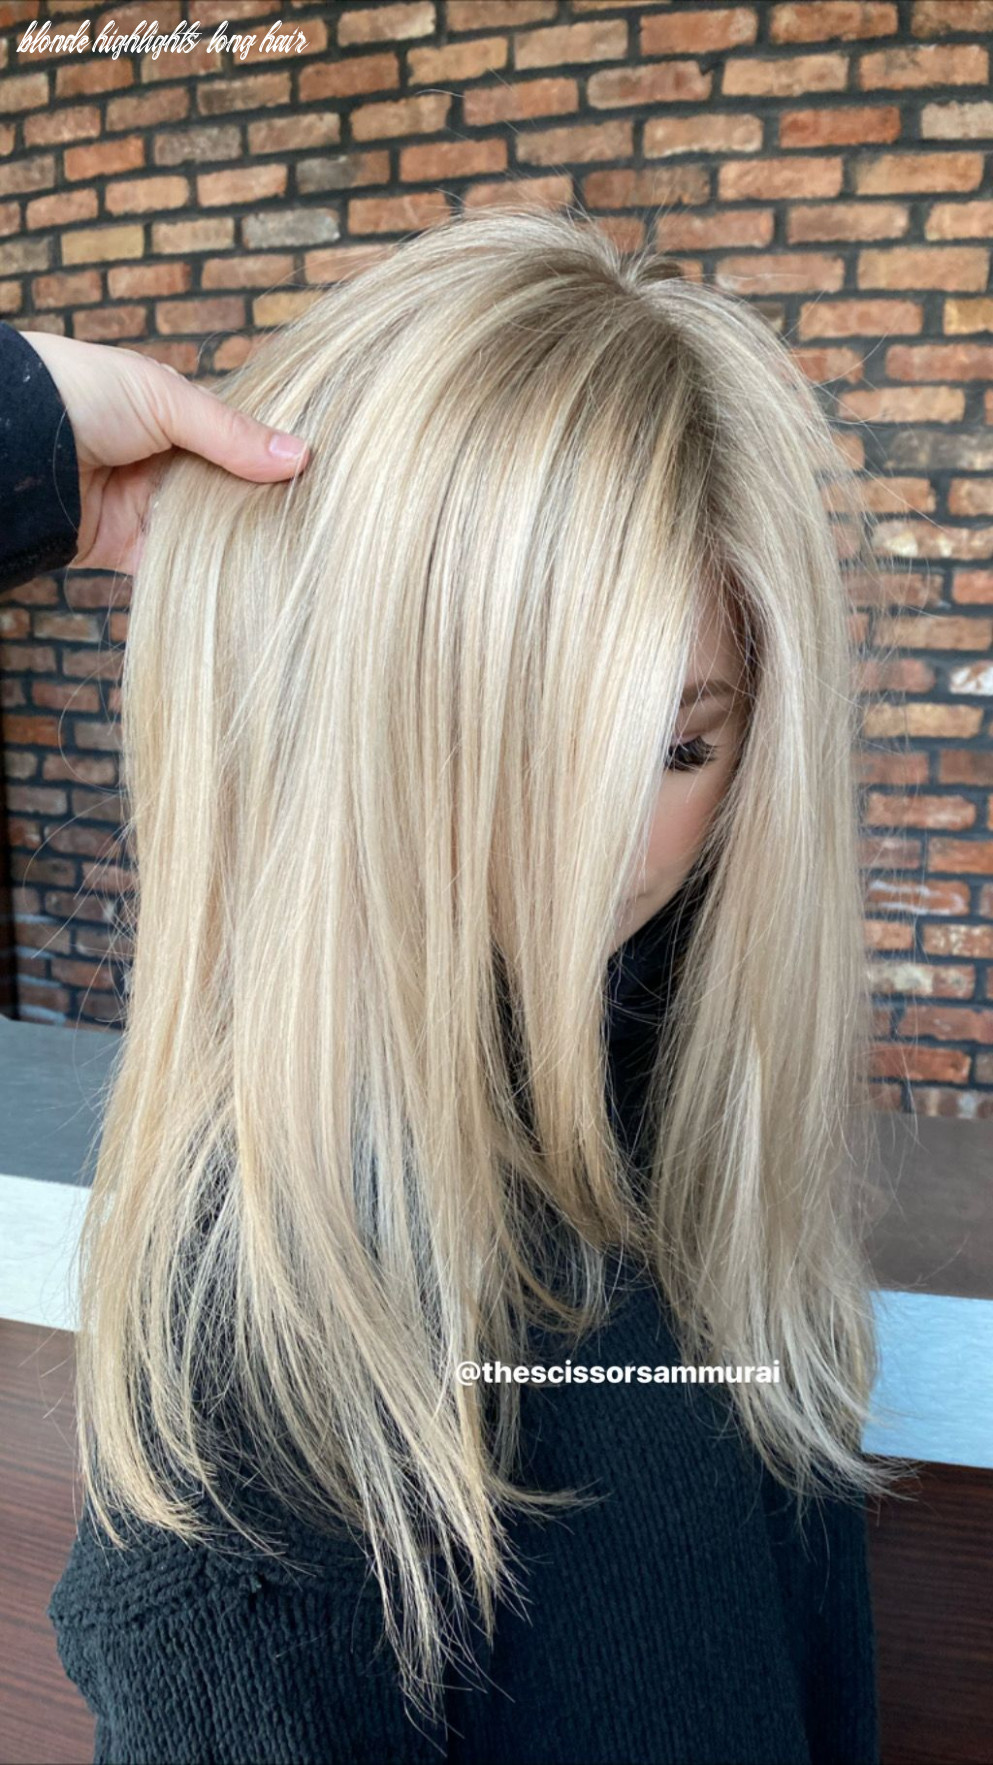 Blonde highlights in 11 | blonde highlights, long hair styles